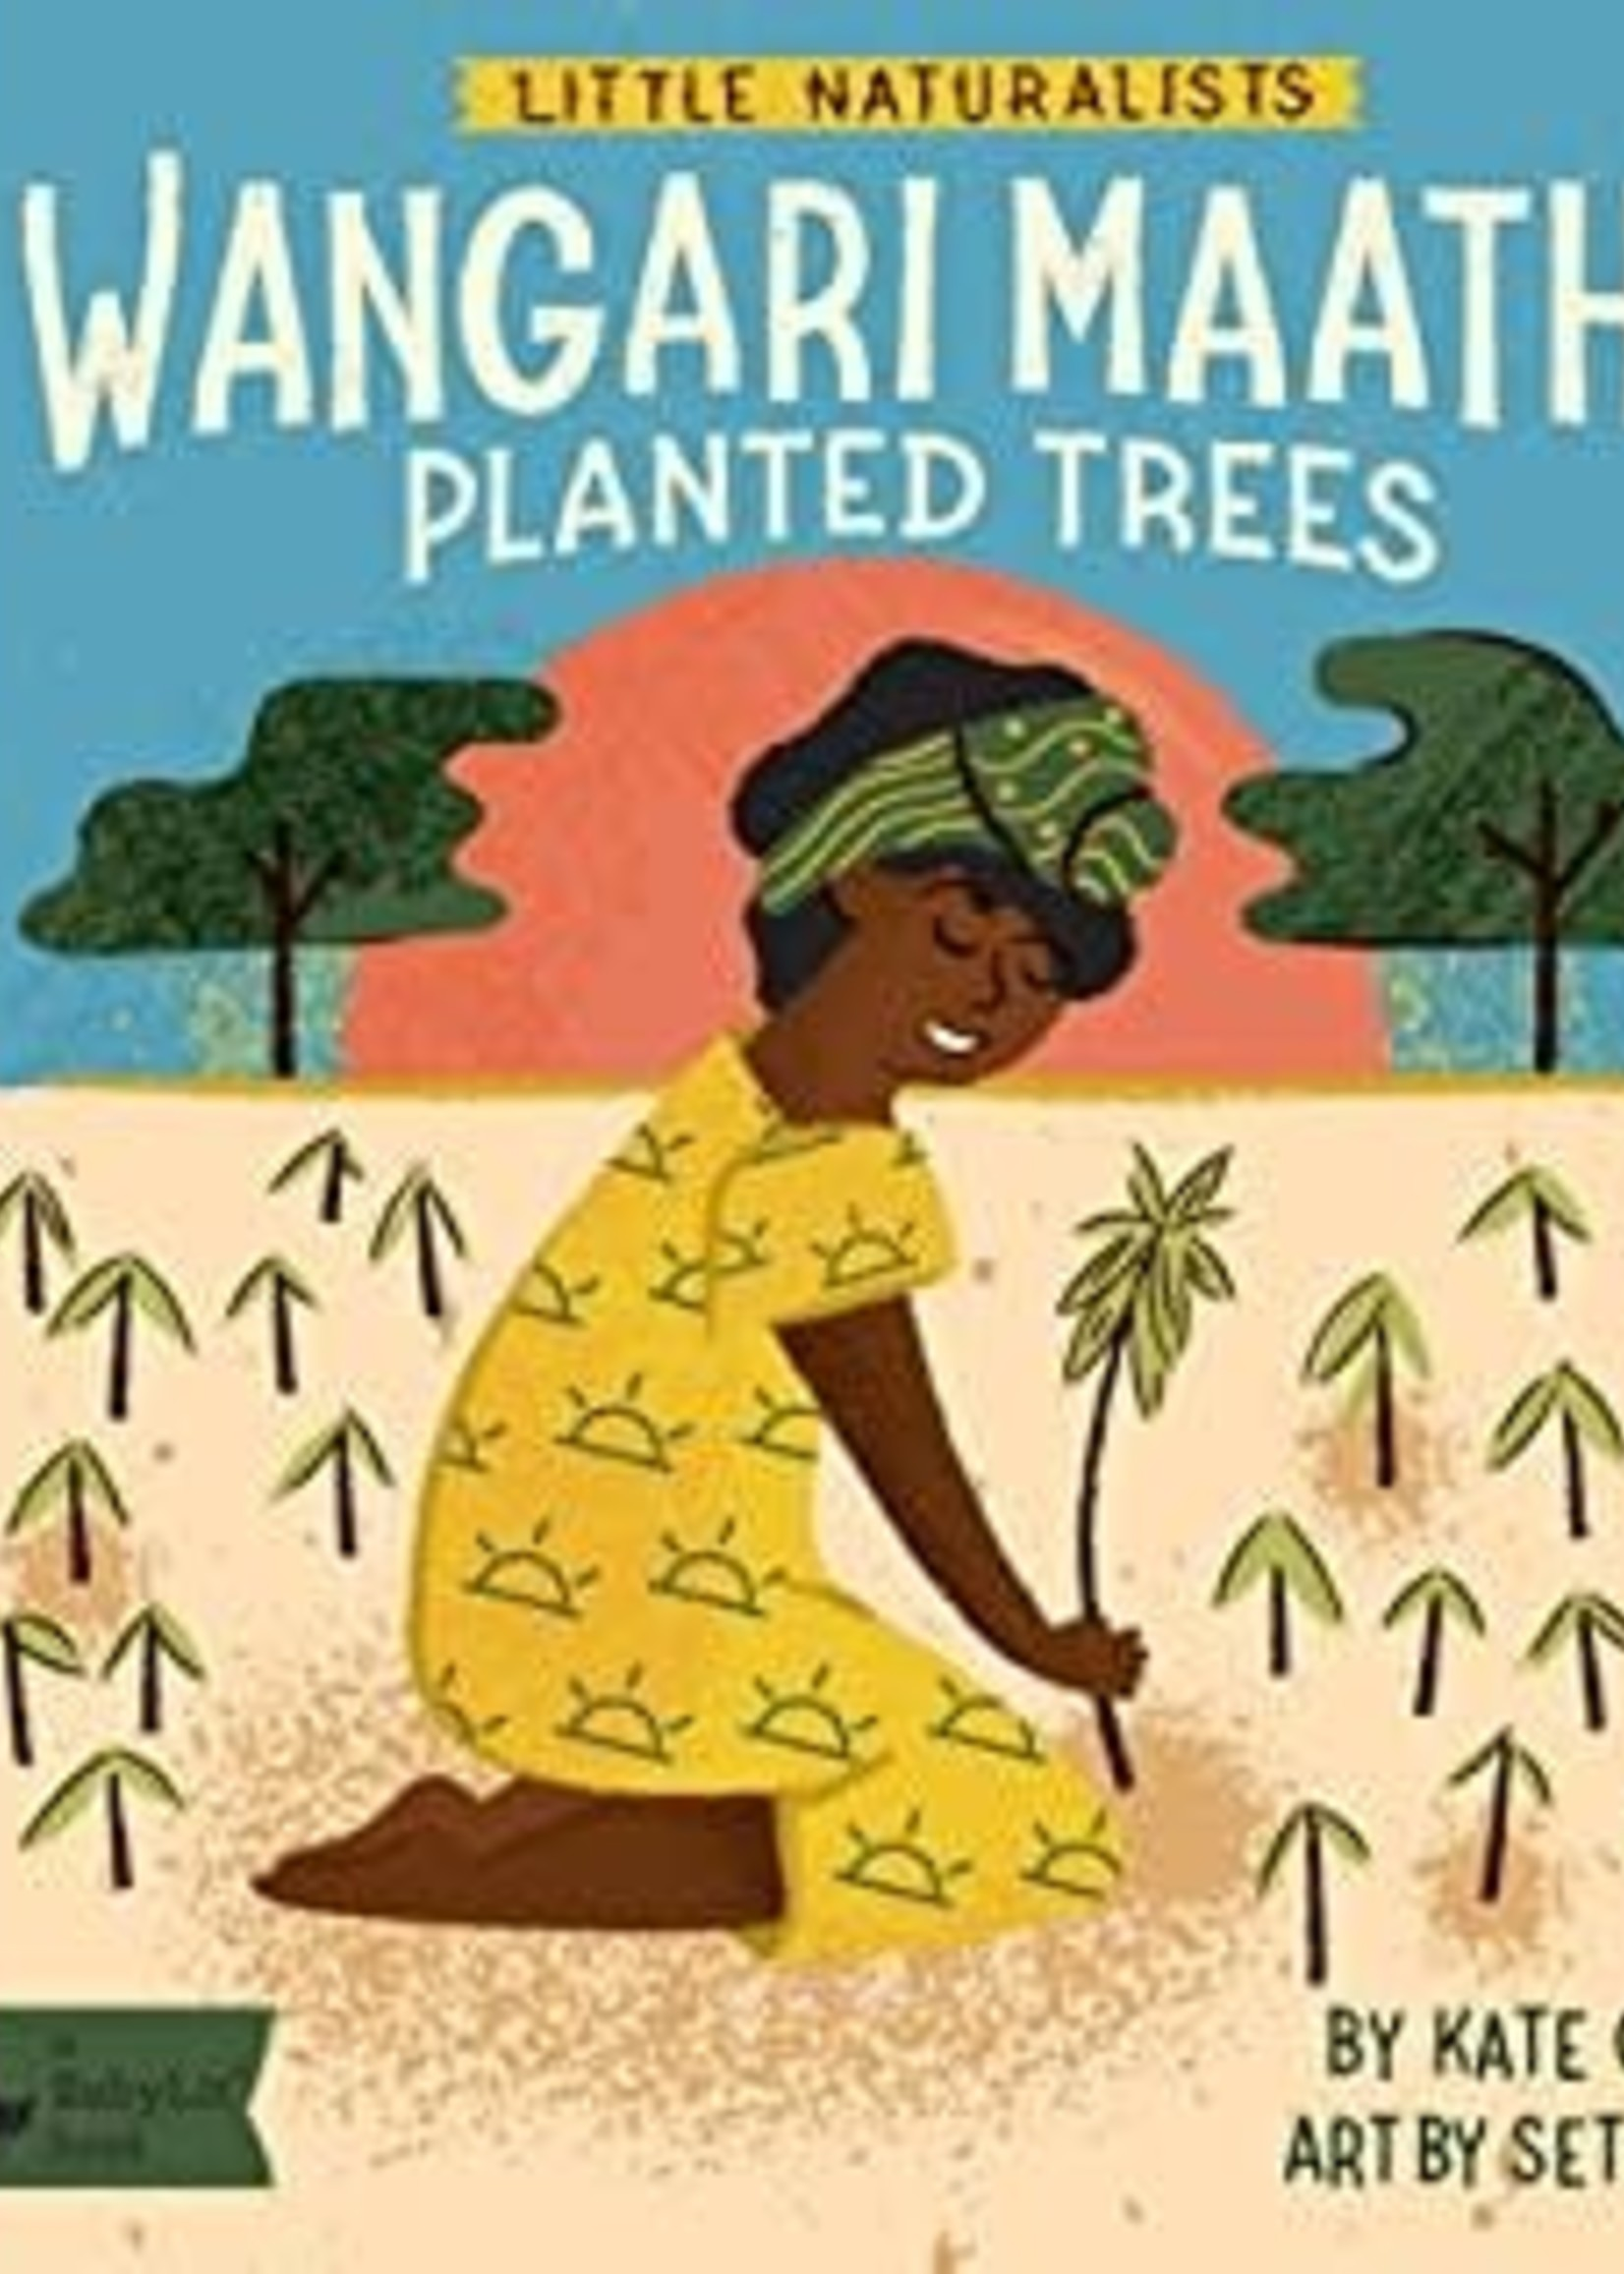 Little Naturalists: Wangari Maathai Planted Trees by Kate Coombs